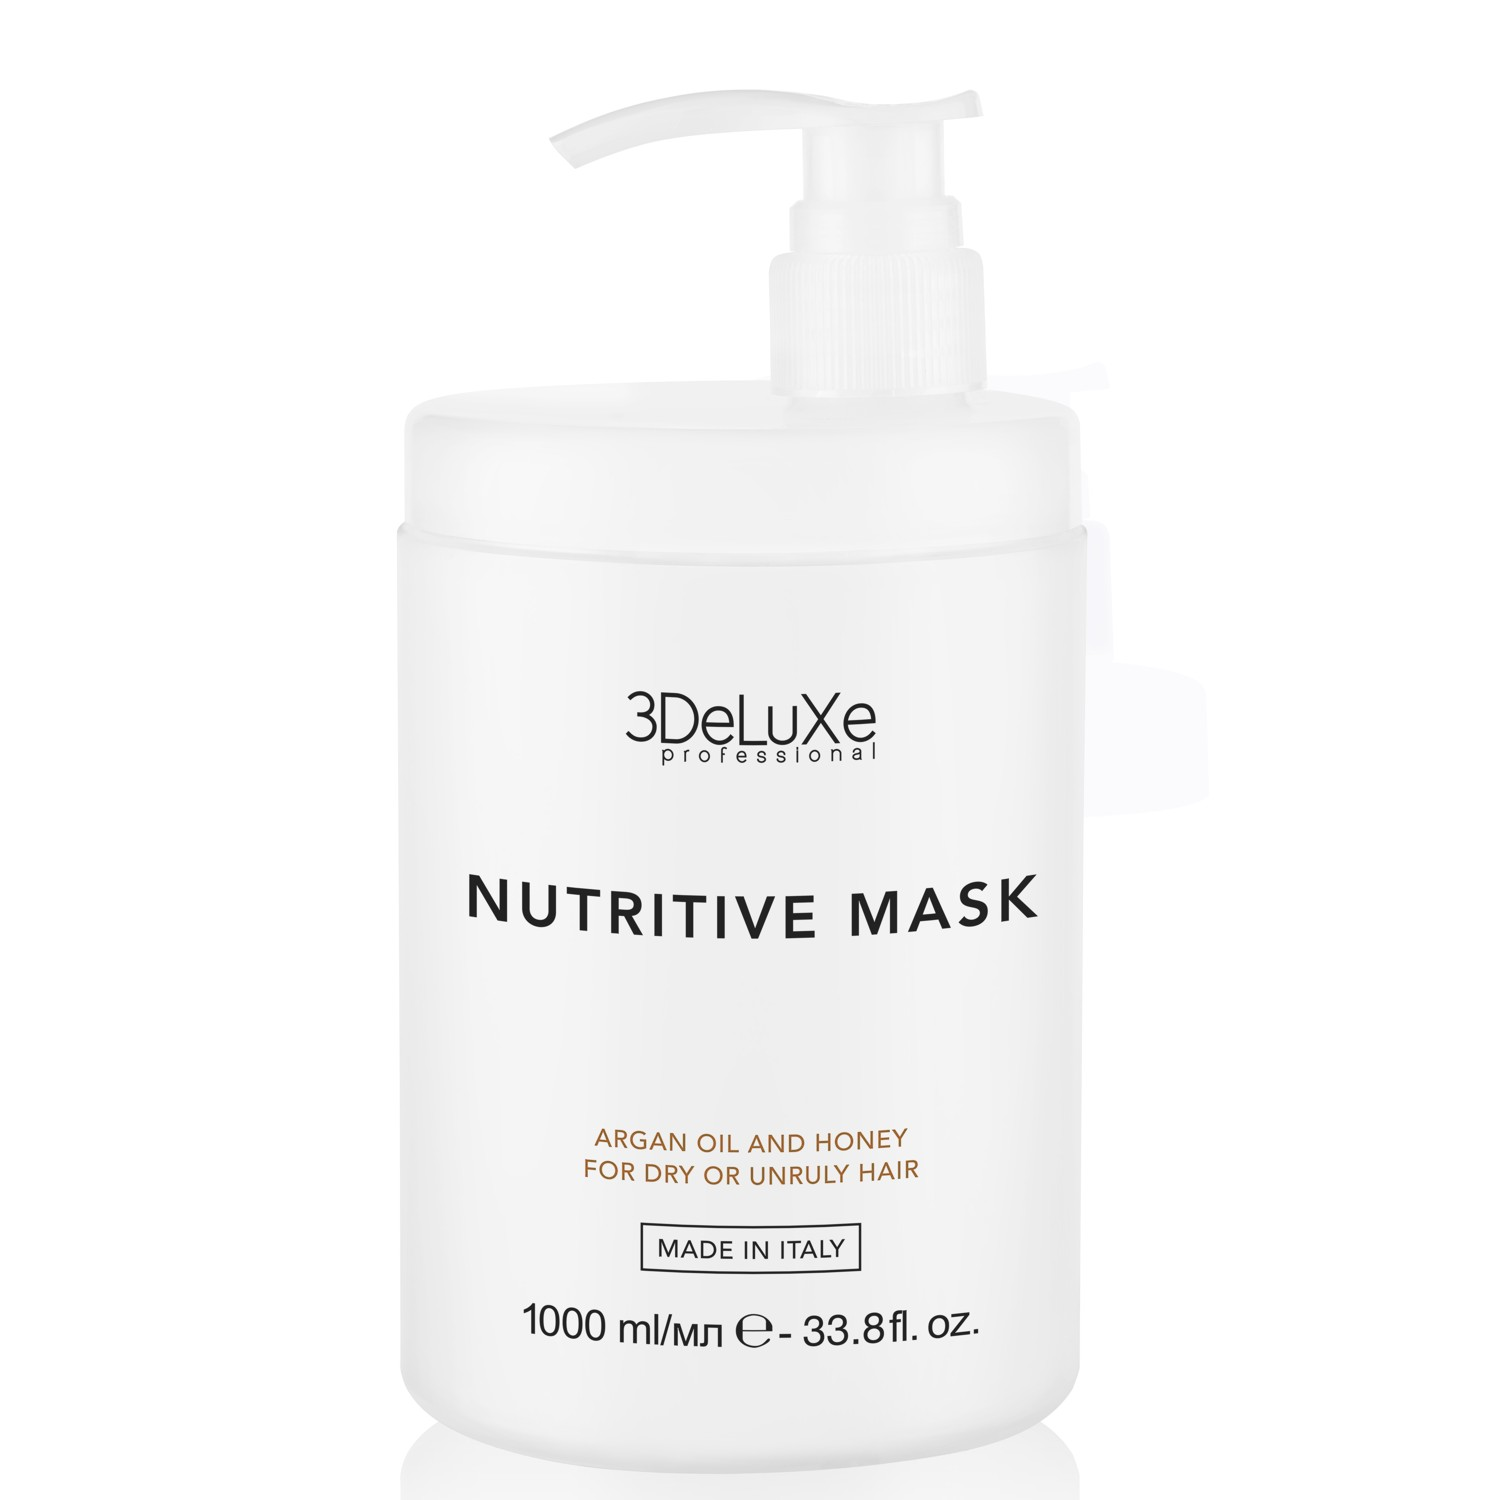 3DeLuXe Professional NUTRITIVE Mask 1 L